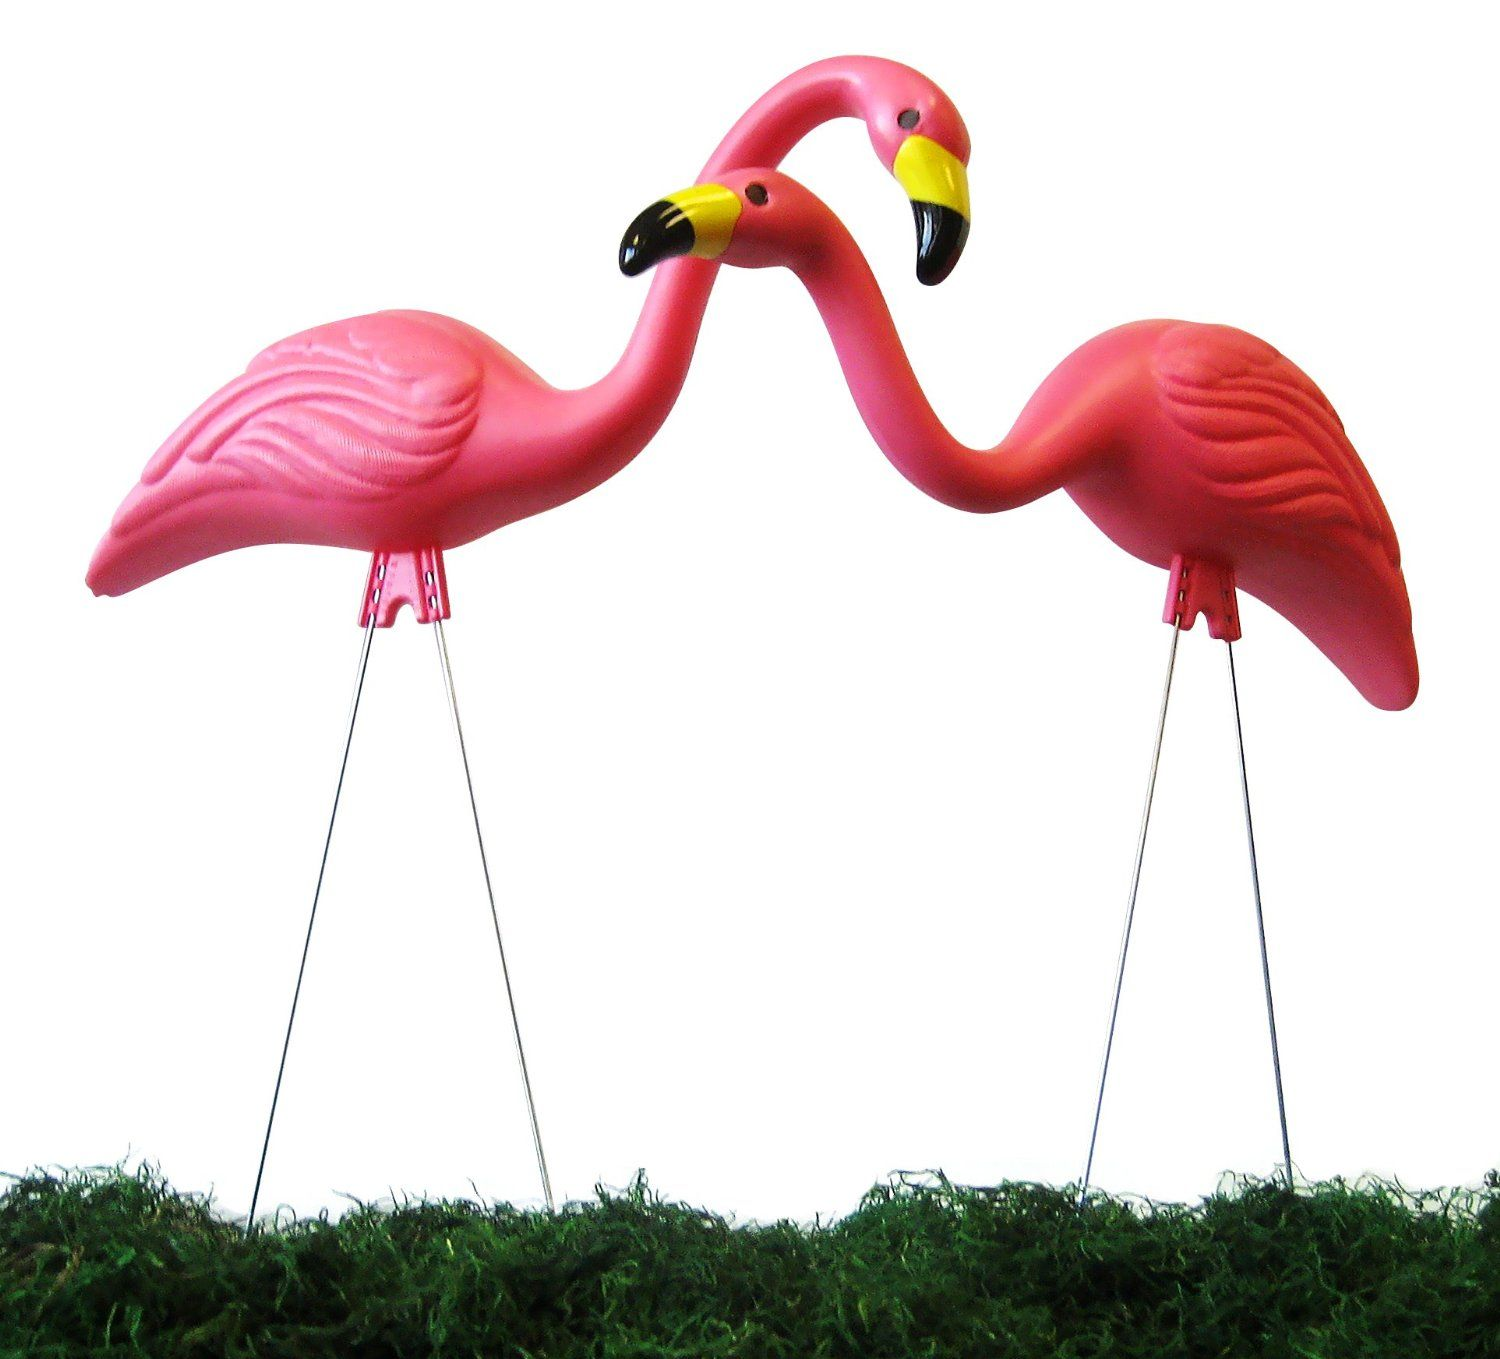 Amazoncom Garden Plast Pink Flamingos 2 Pack Discontinued by